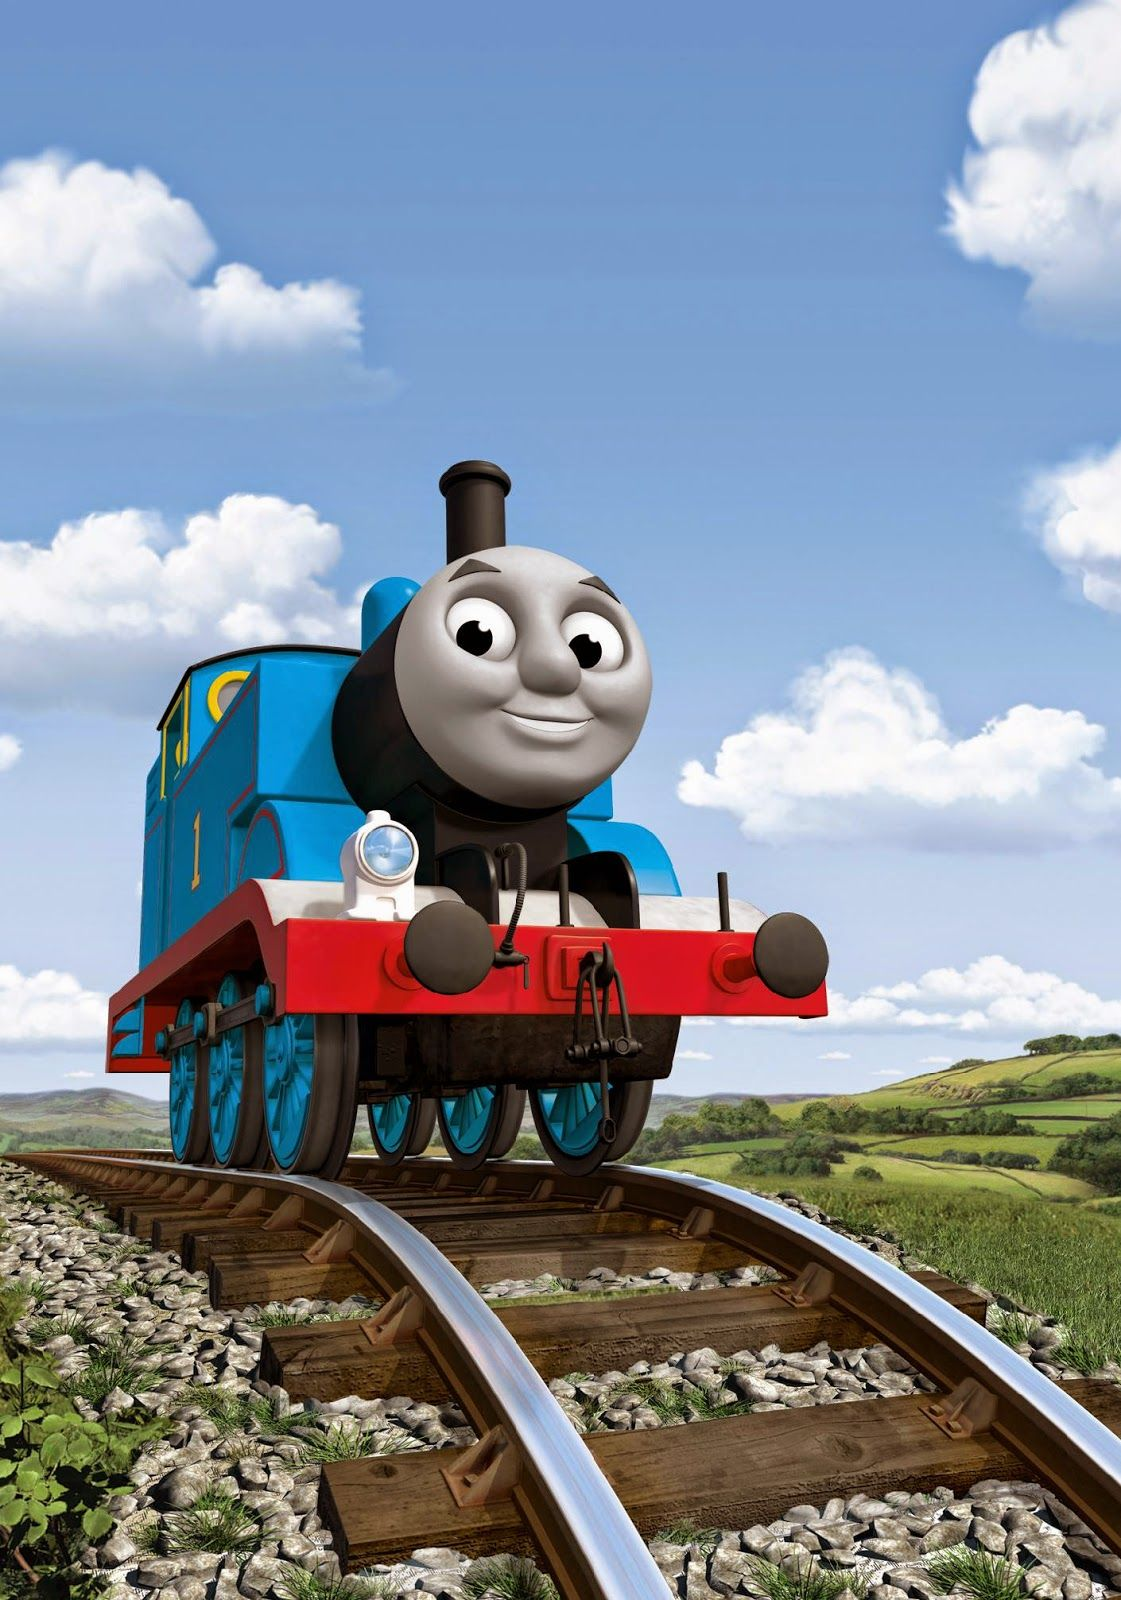 Thomas and Friends Wallpaper HD   HD Wallpapers   Pinterest   Hd wallpaper and Wallpaper